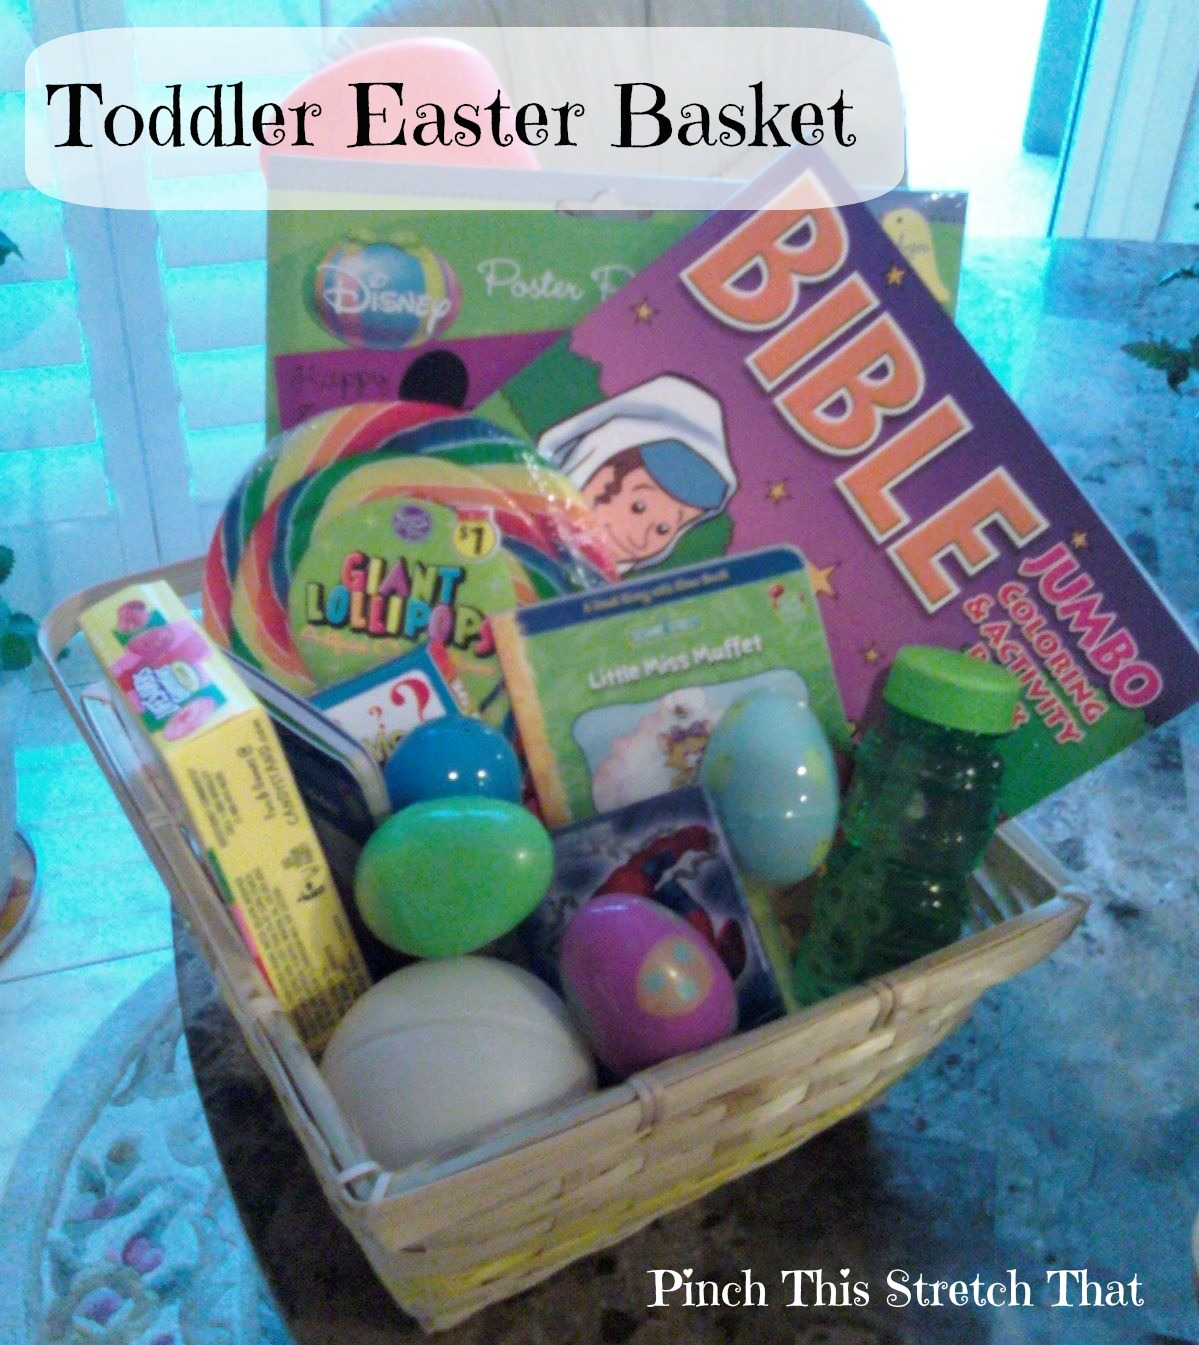 Homemade easter basket ideas under 10 homemade easter basket ideas from momslifeboat ginahorne easter negle Choice Image